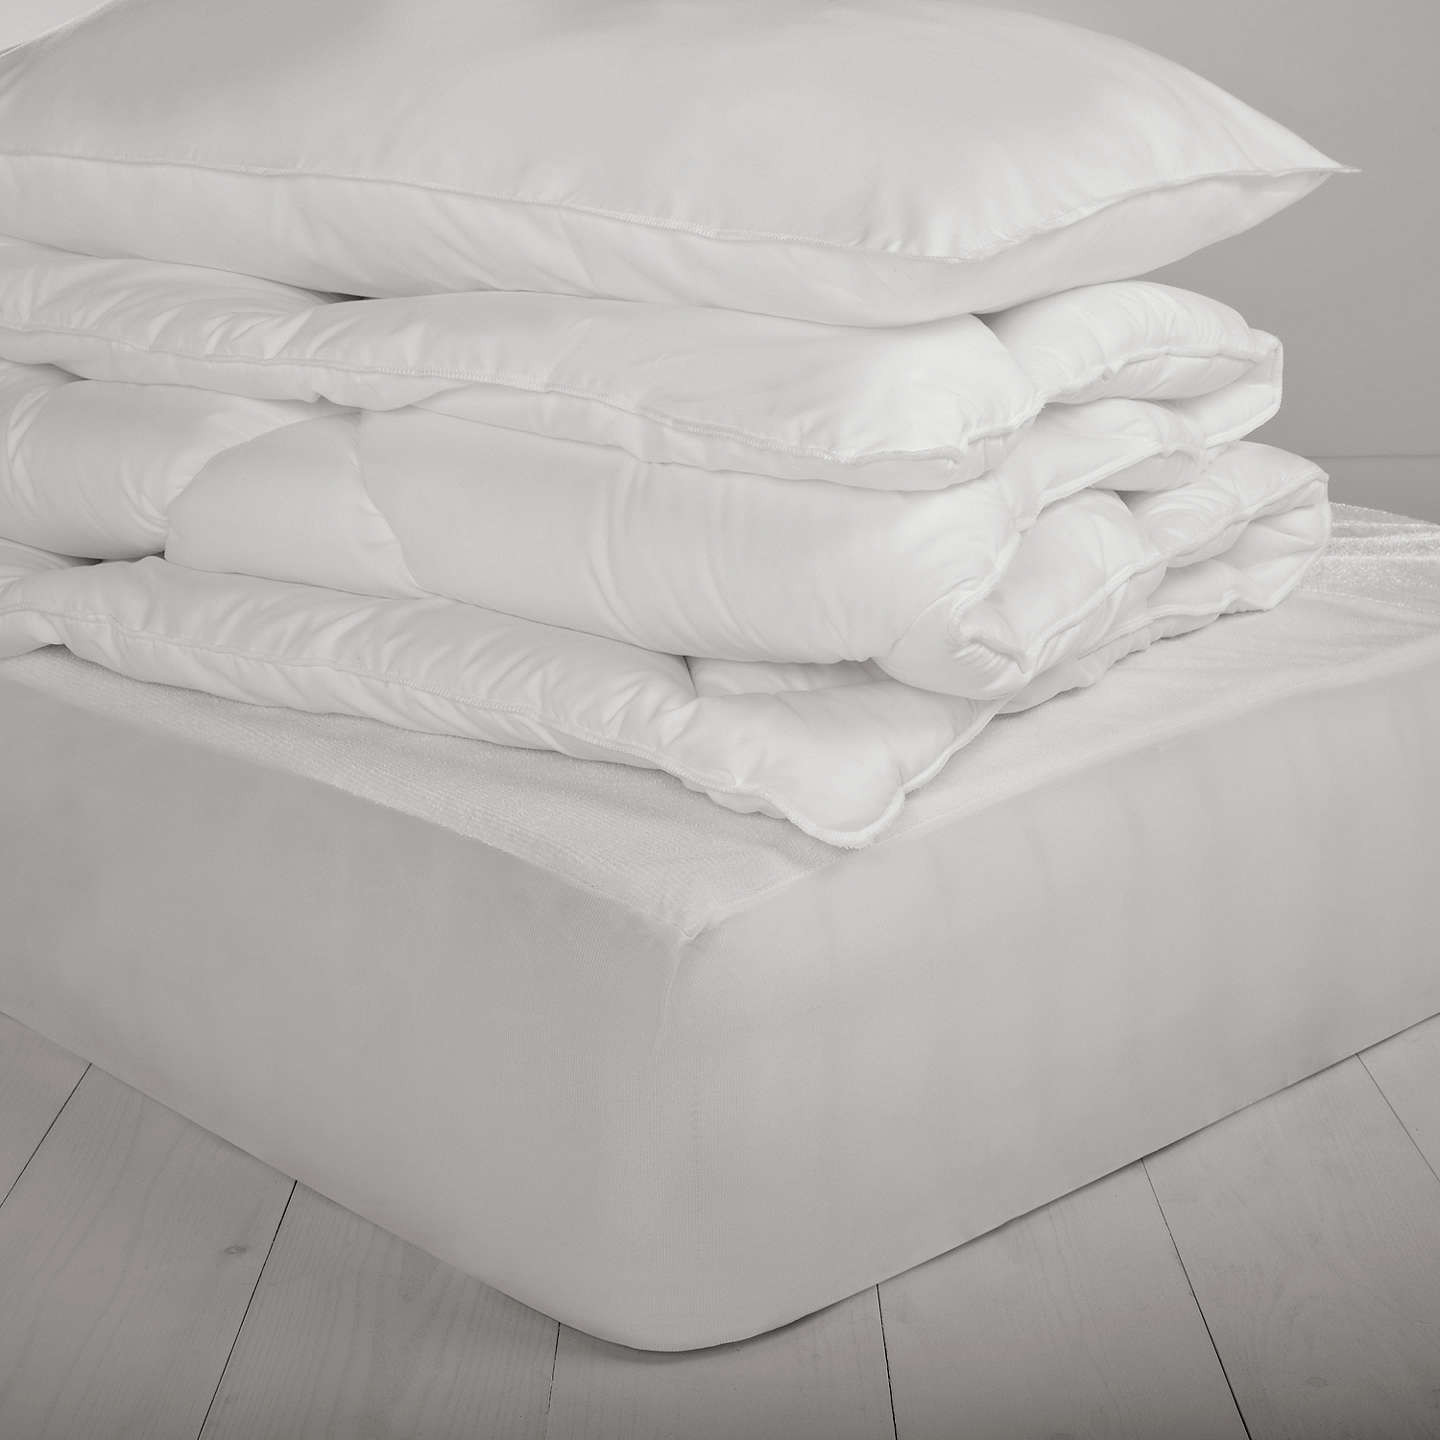 king and bed full protector products pillow bundle inc value pillows tog pack valuebedpack duvet